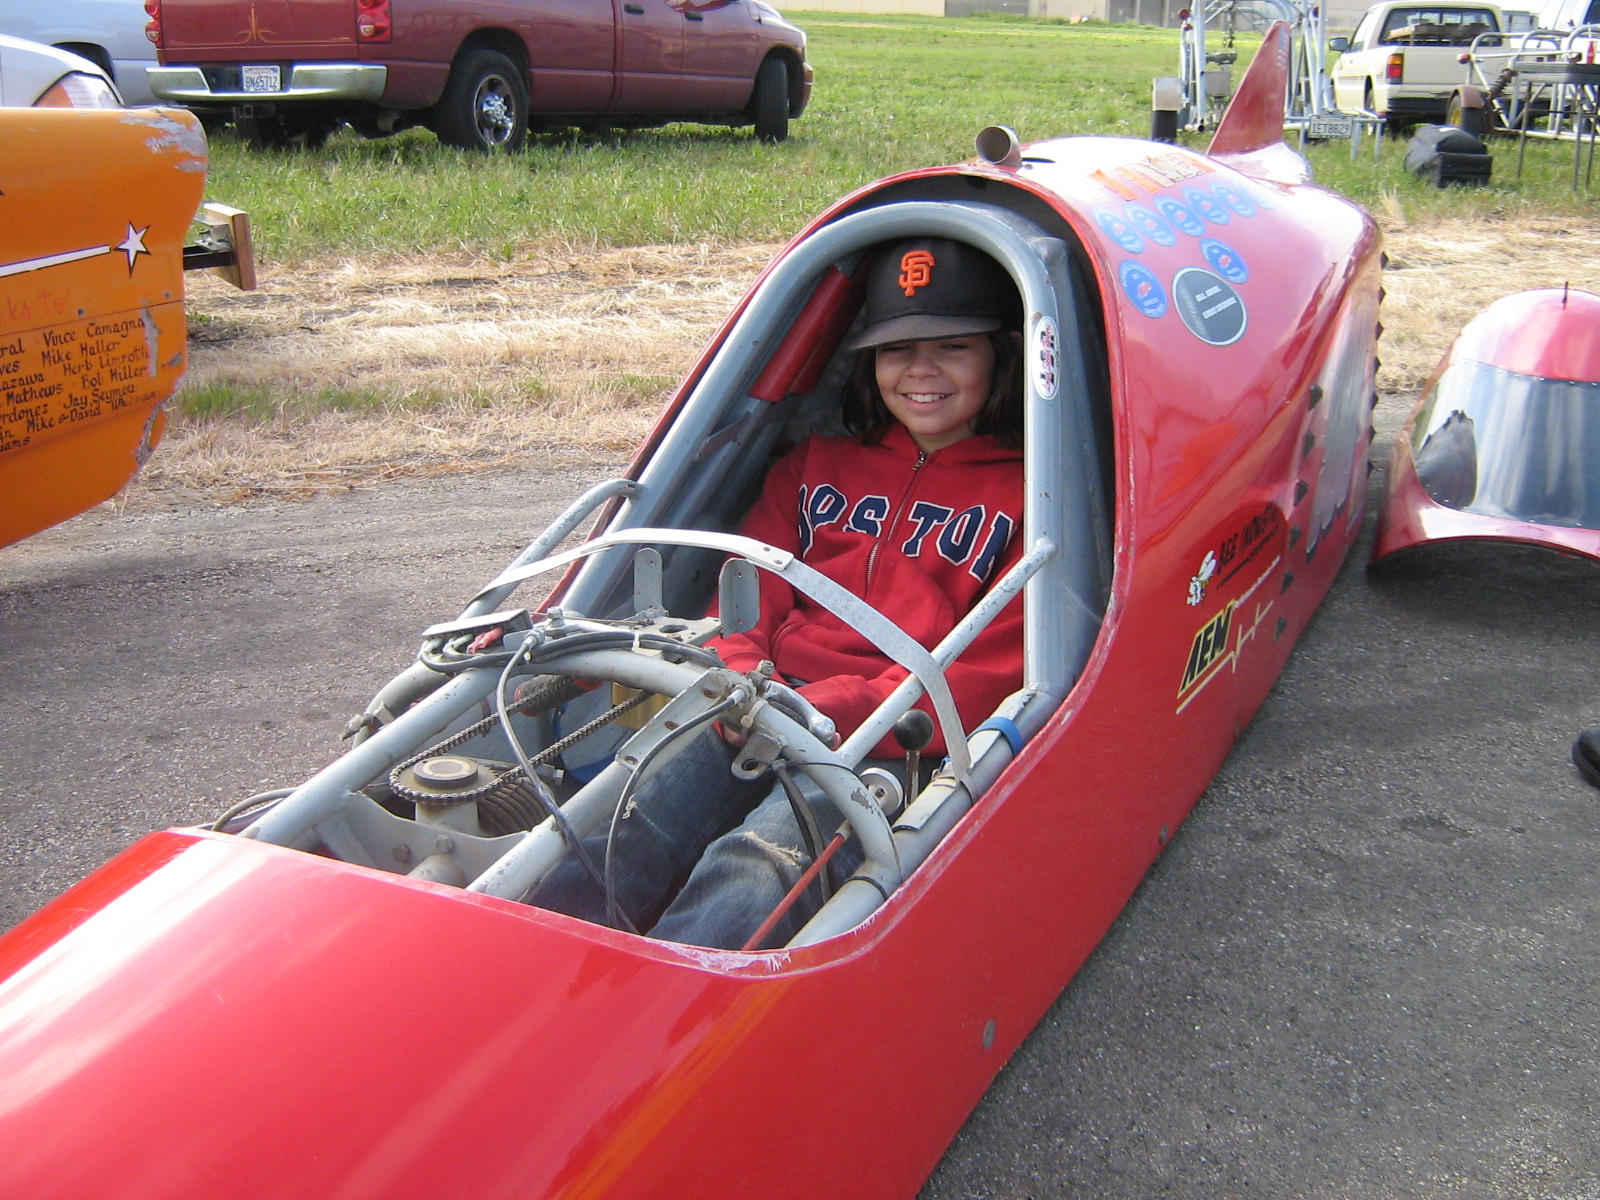 Click image for larger version  Name:Nick in red car.JPG Views:93 Size:709.0 KB ID:68315